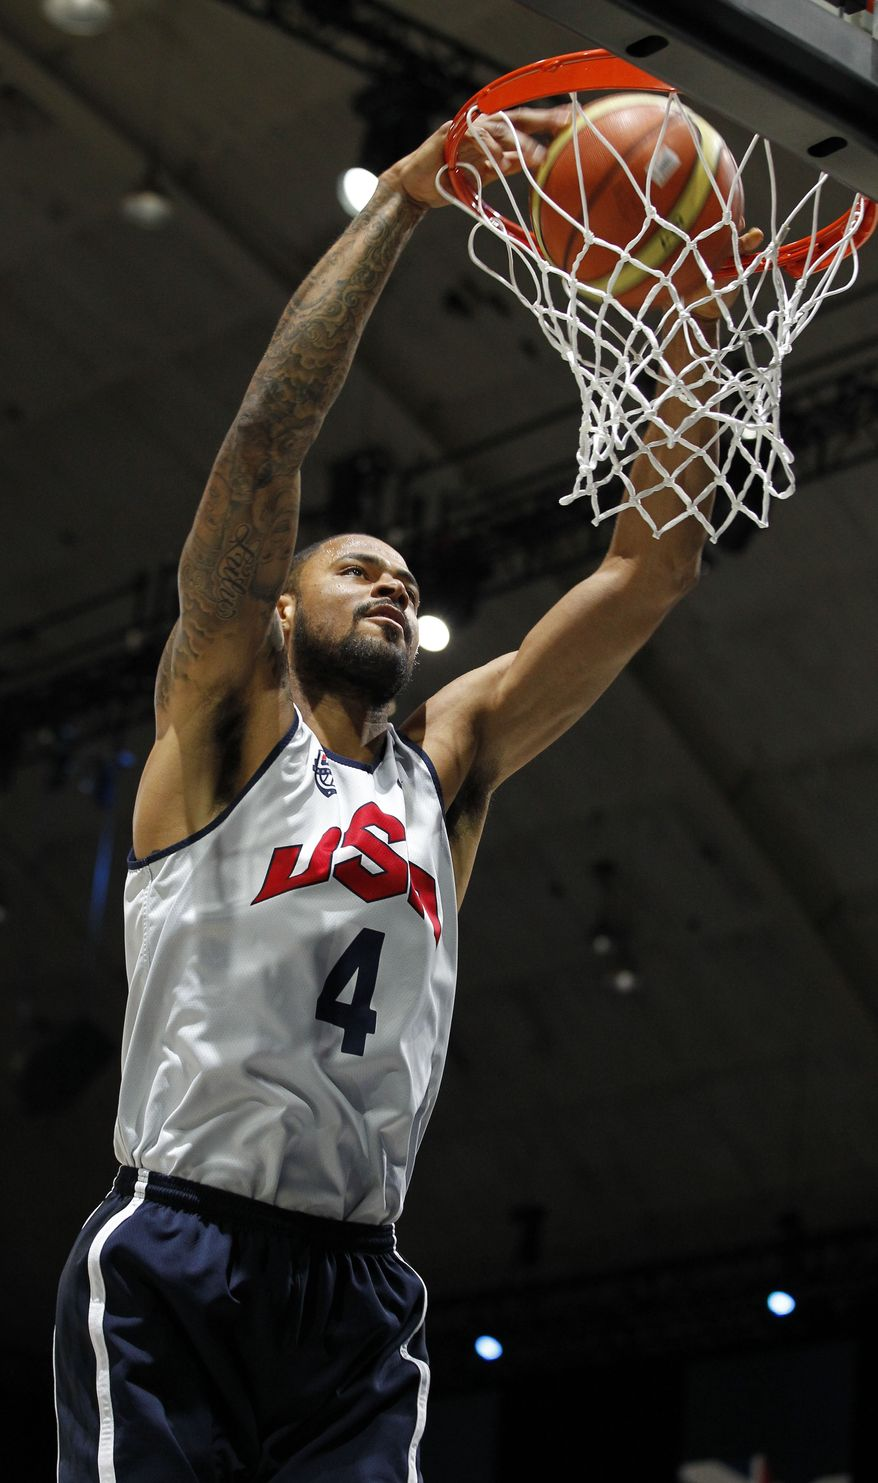 USA Basketball center Tyson Chandler dunks the ball during practice, Saturday, July 14, 2012, in Washington. (AP Photo/Alex Brandon)